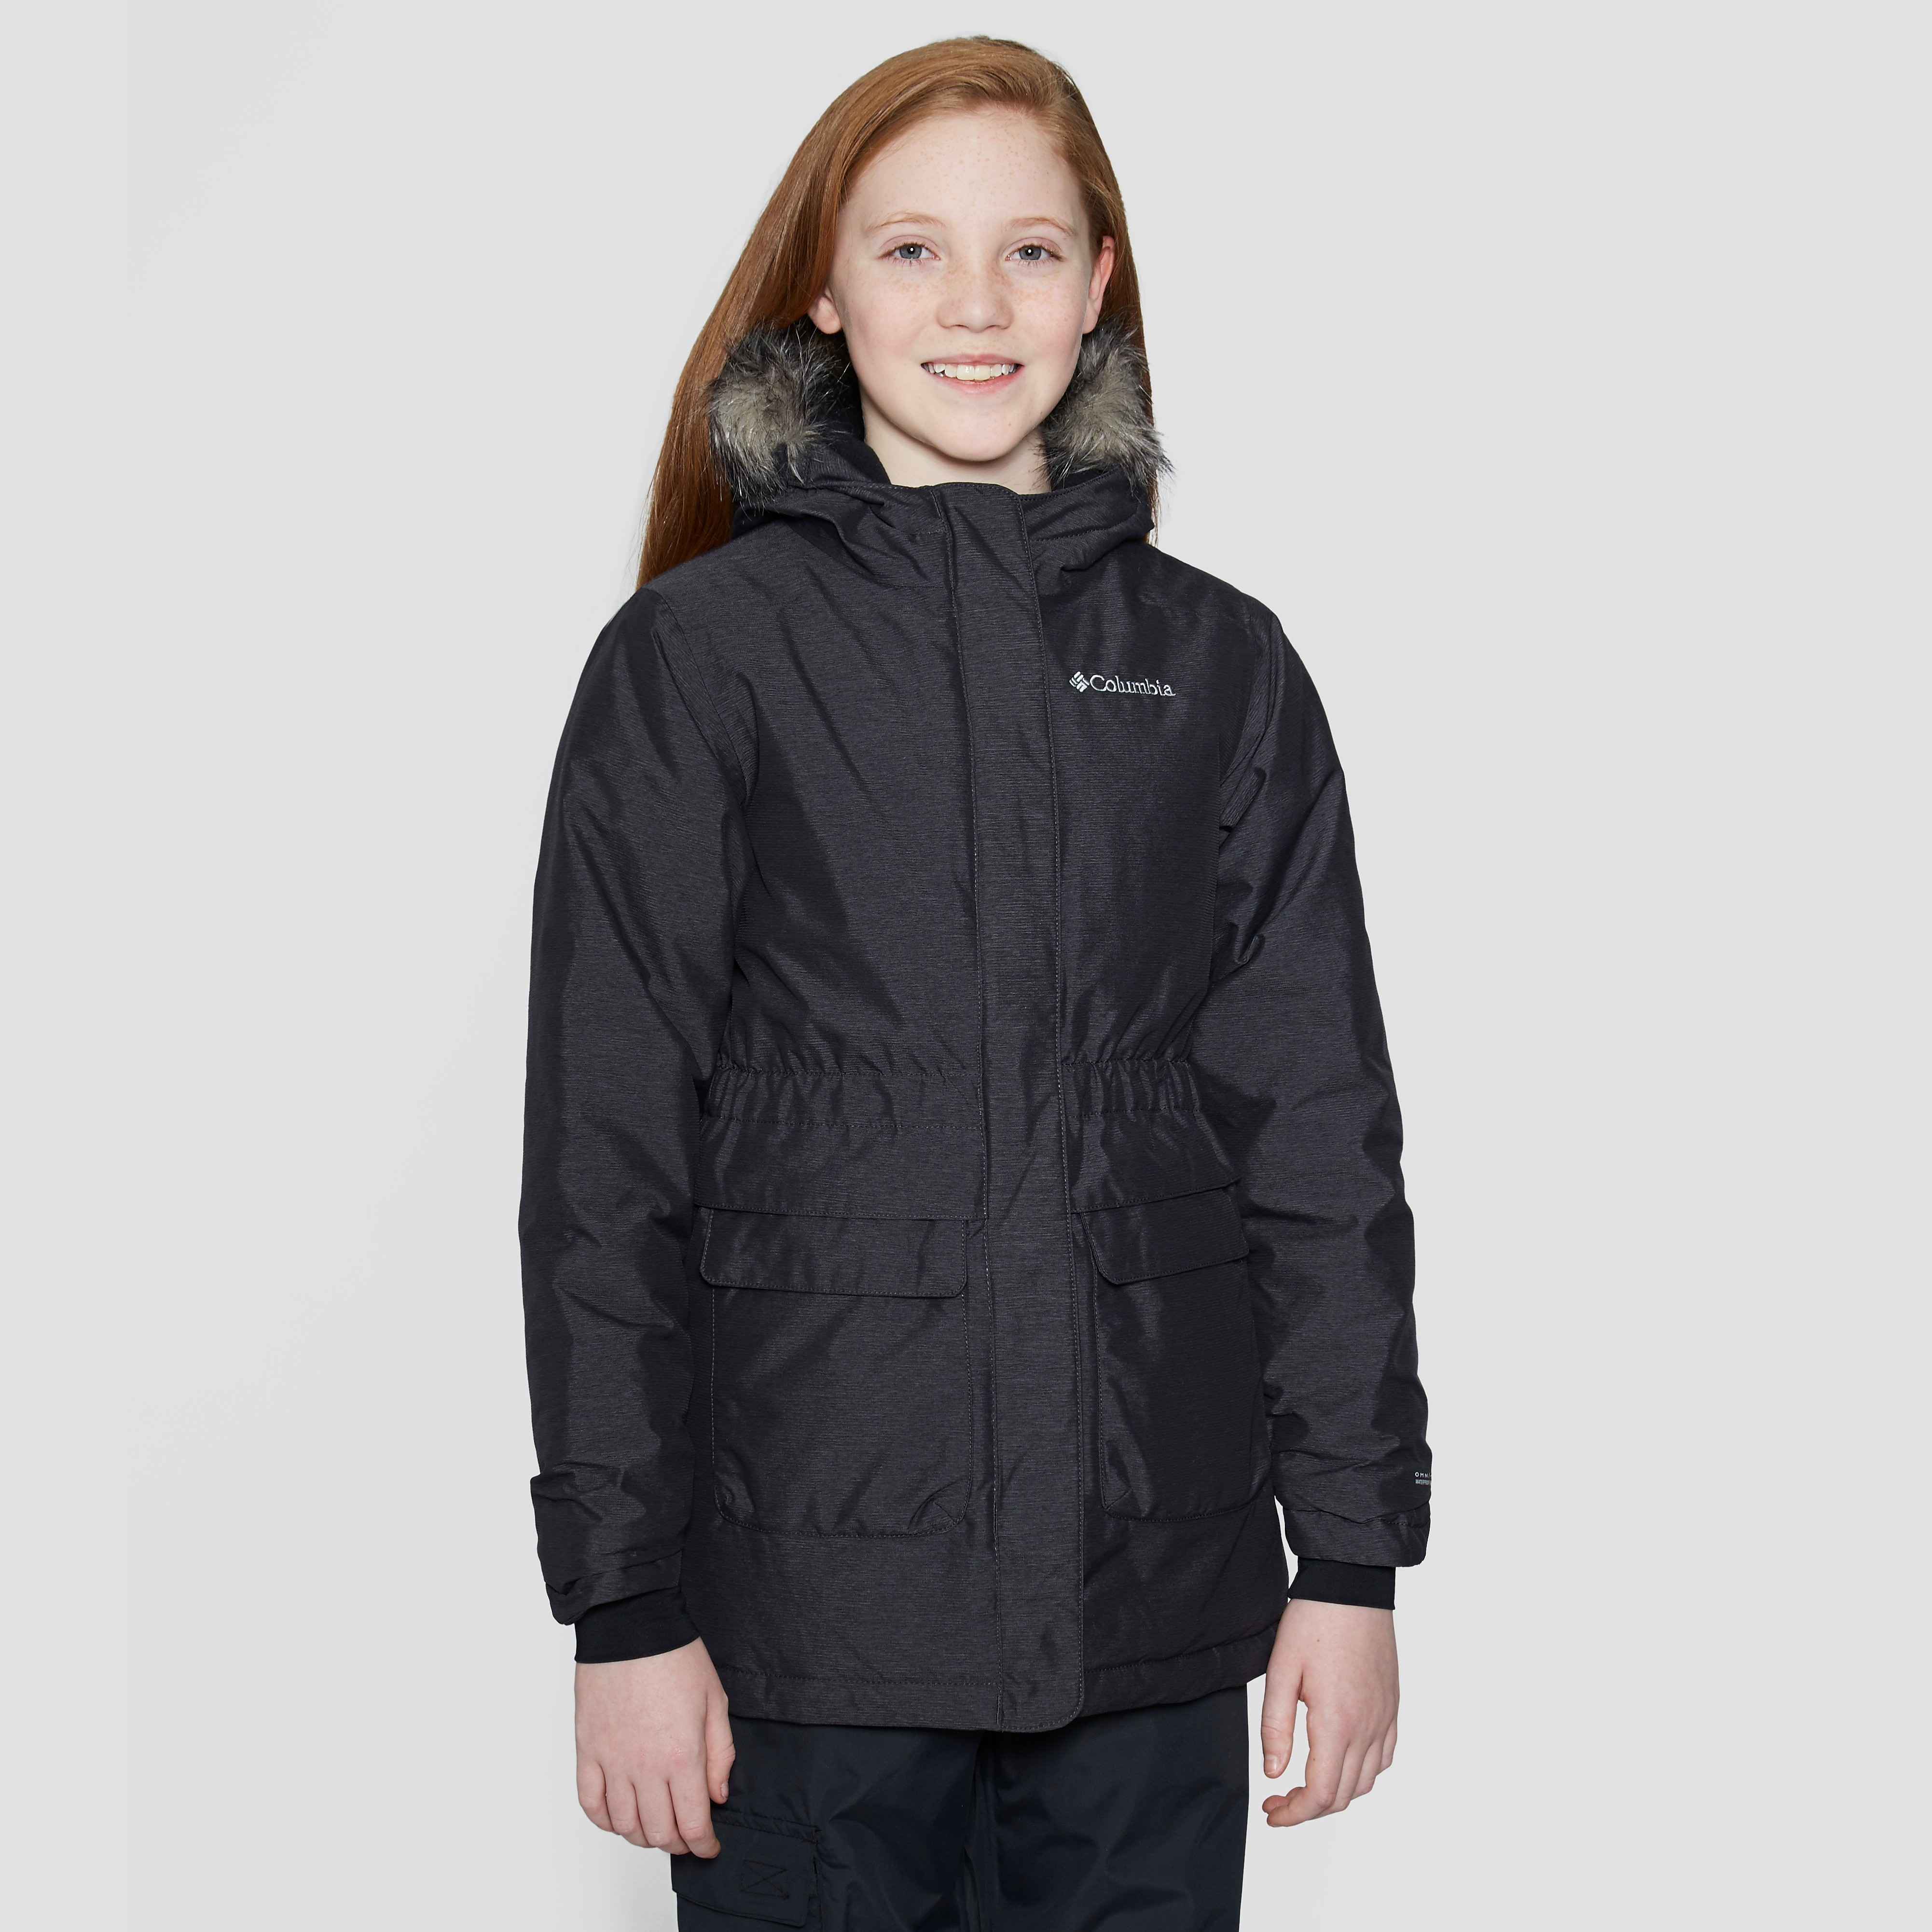 Columbia Nordic Strider Girl's Jacket